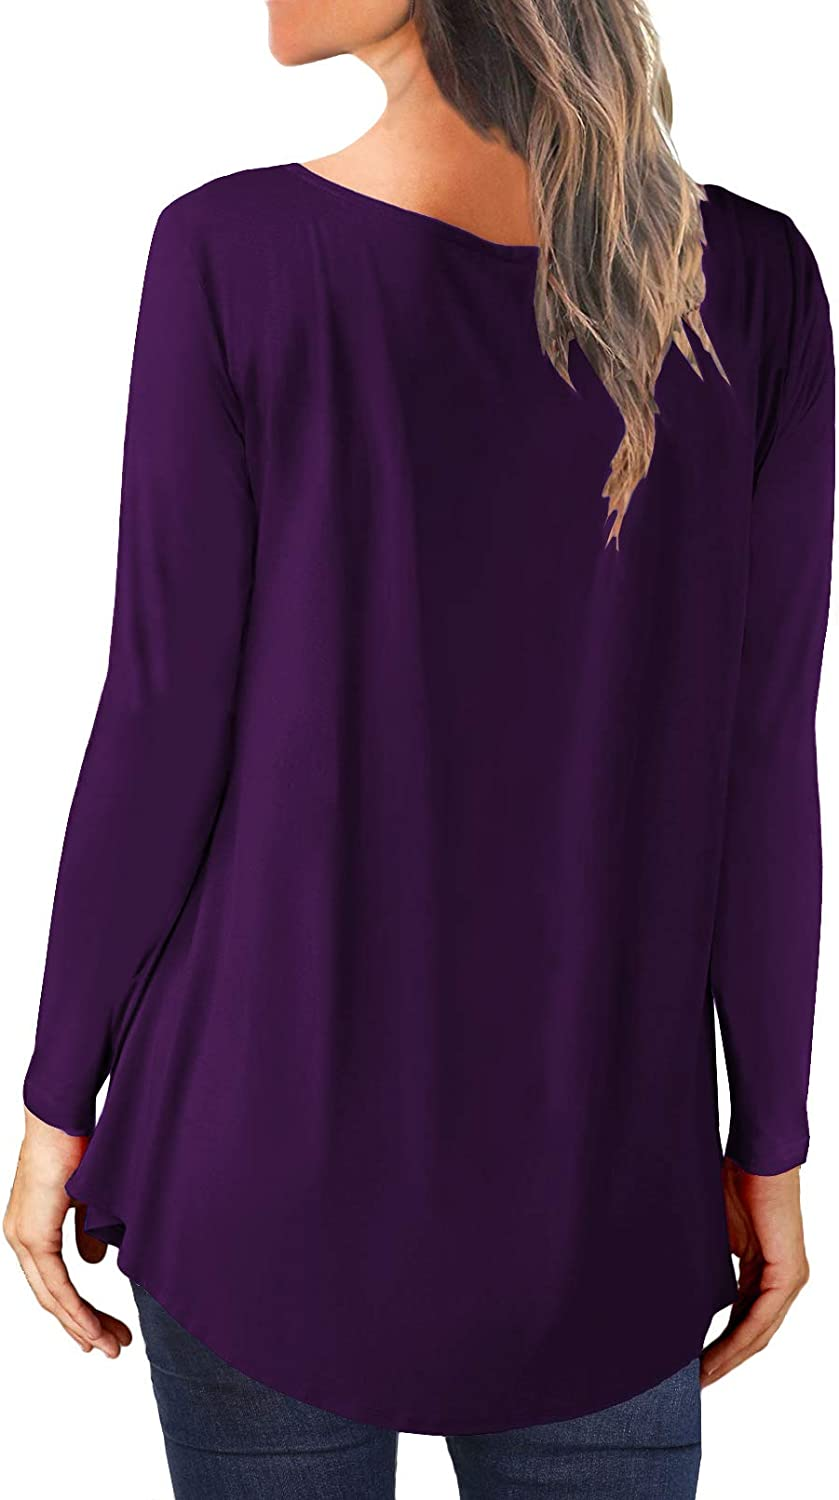 onlypuff Womens Short Sleeve Henley Shirts Ruffle Casual Tunic Tops Solid Color